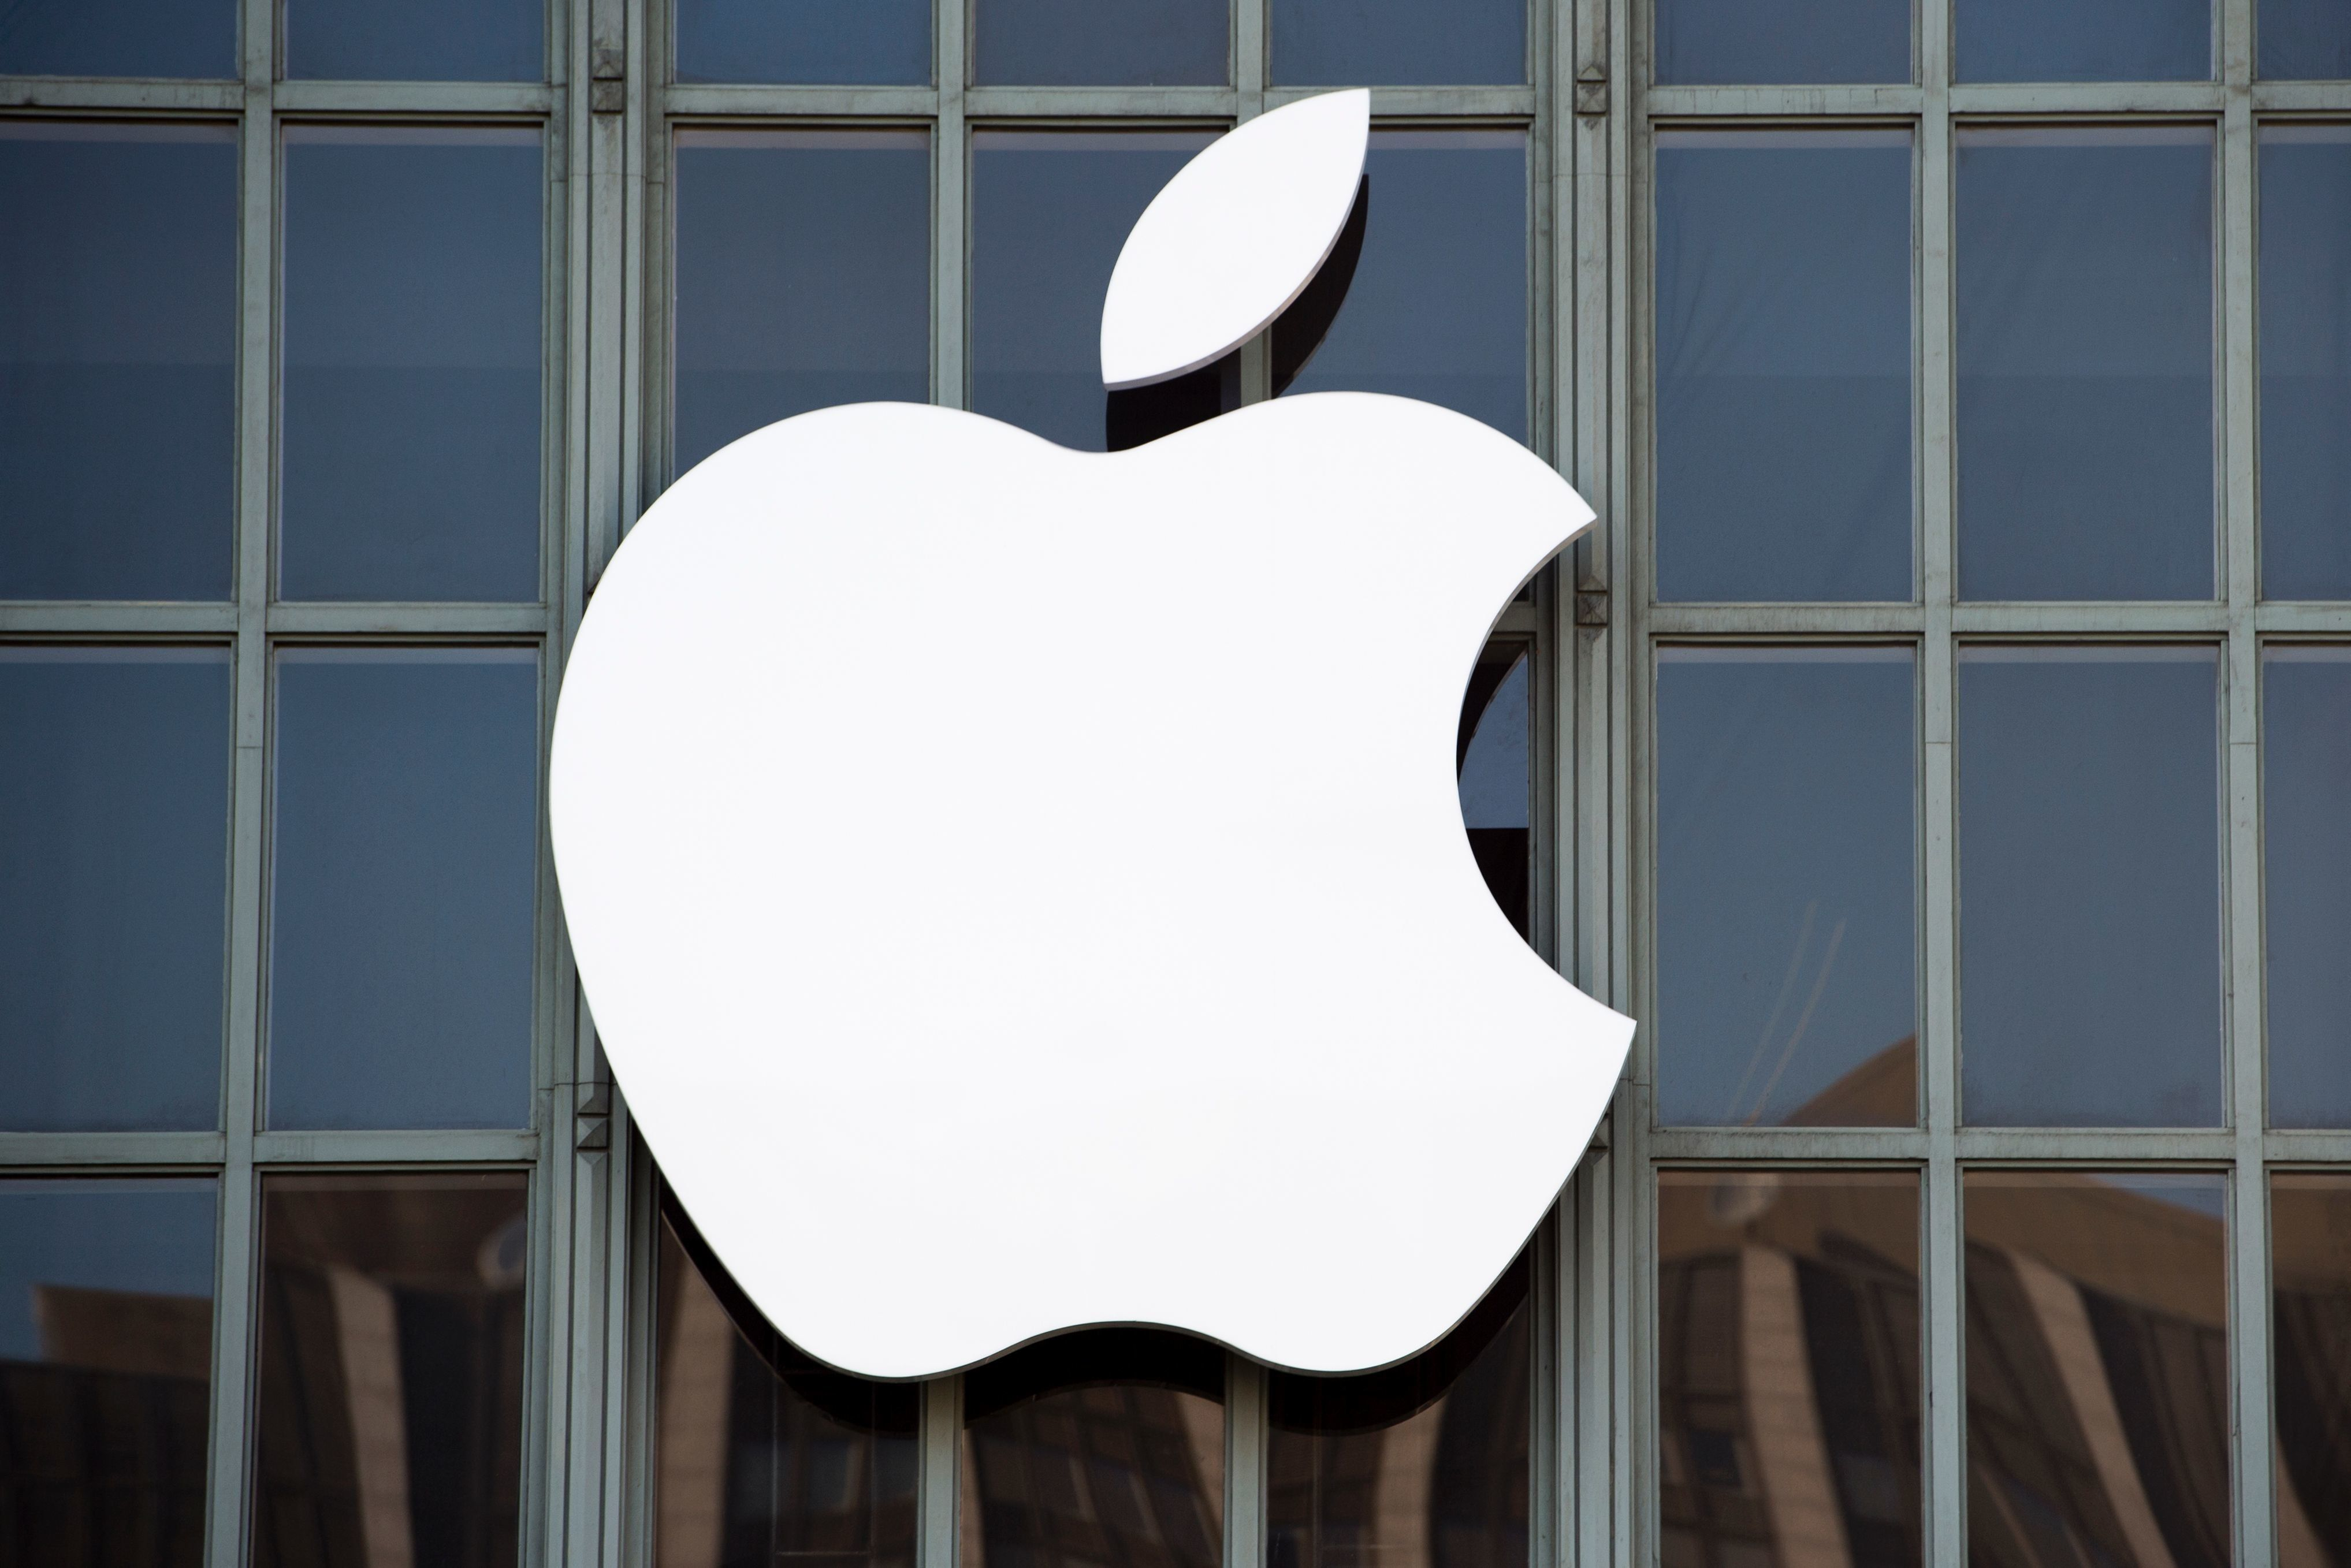 The Apple logo is seen on the outside of Bill Graham Civic Auditorium before the start of an event in San Francisco, California on September 7, 2016. Apple on Wednesday is expected to introduce a new iPhone and perhaps a second-generation smartwatch as it polishes its lineup of devices to shine during the year-end shopping season. The rumor mill has been grinding away with talk of iPhone 7 models that will boast faster chips, more sophisticated cameras, and improved software while doing away with jacks for plugging in wired headphones.  / AFP / Josh Edelson        (Photo credit should read JOSH EDELSON/AFP/Getty Images)